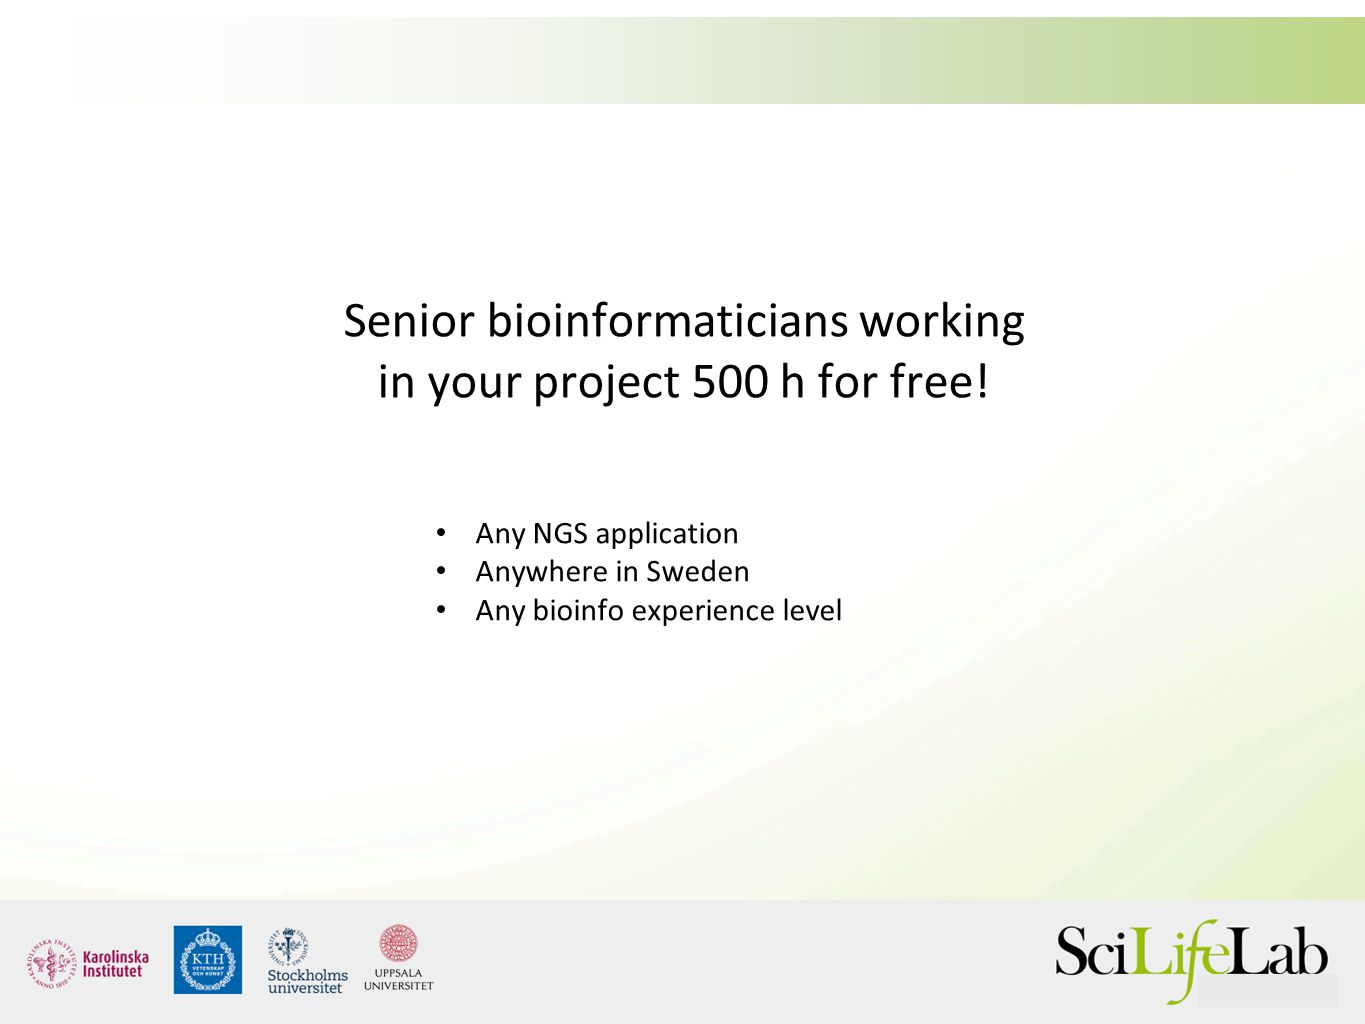 Senior bioinformaticians working in your project 500 h for free!